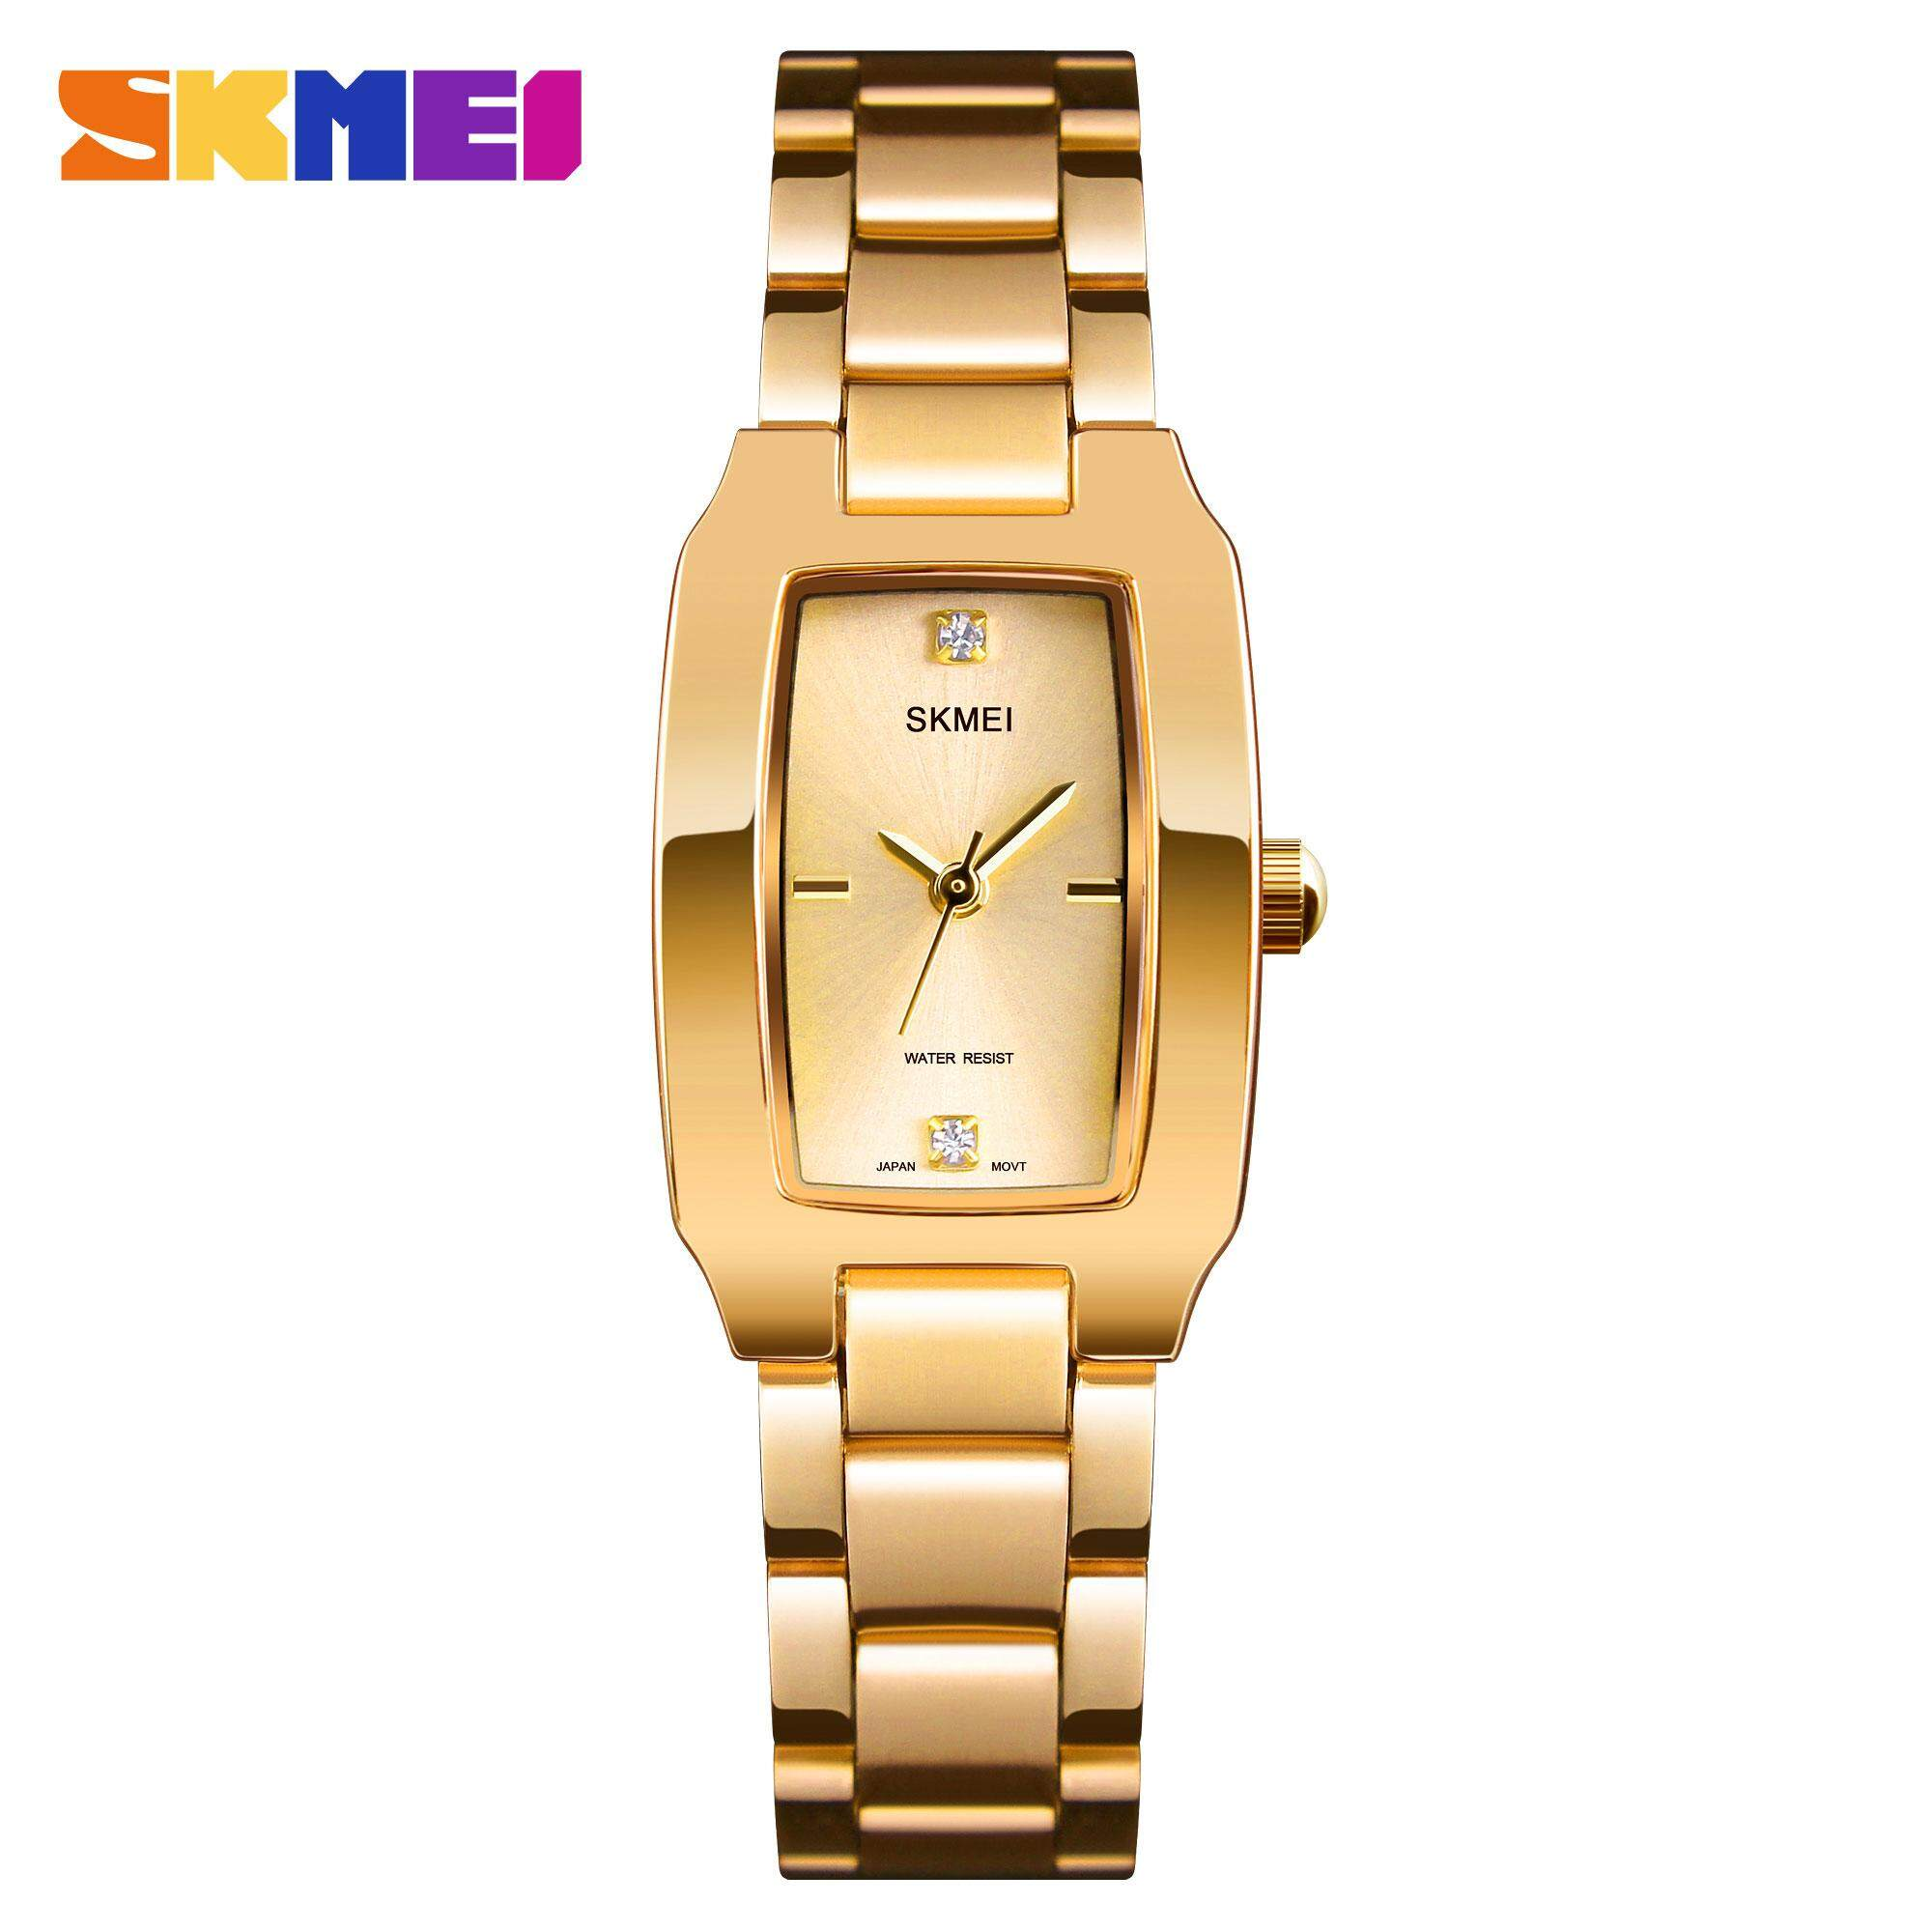 [CNY 2020] SKMEI New Women Fashion Watches Quartz Waterproof Watch Stainless Steel Simple Elegant Wristwatches Ladies Clock 1400 Malaysia